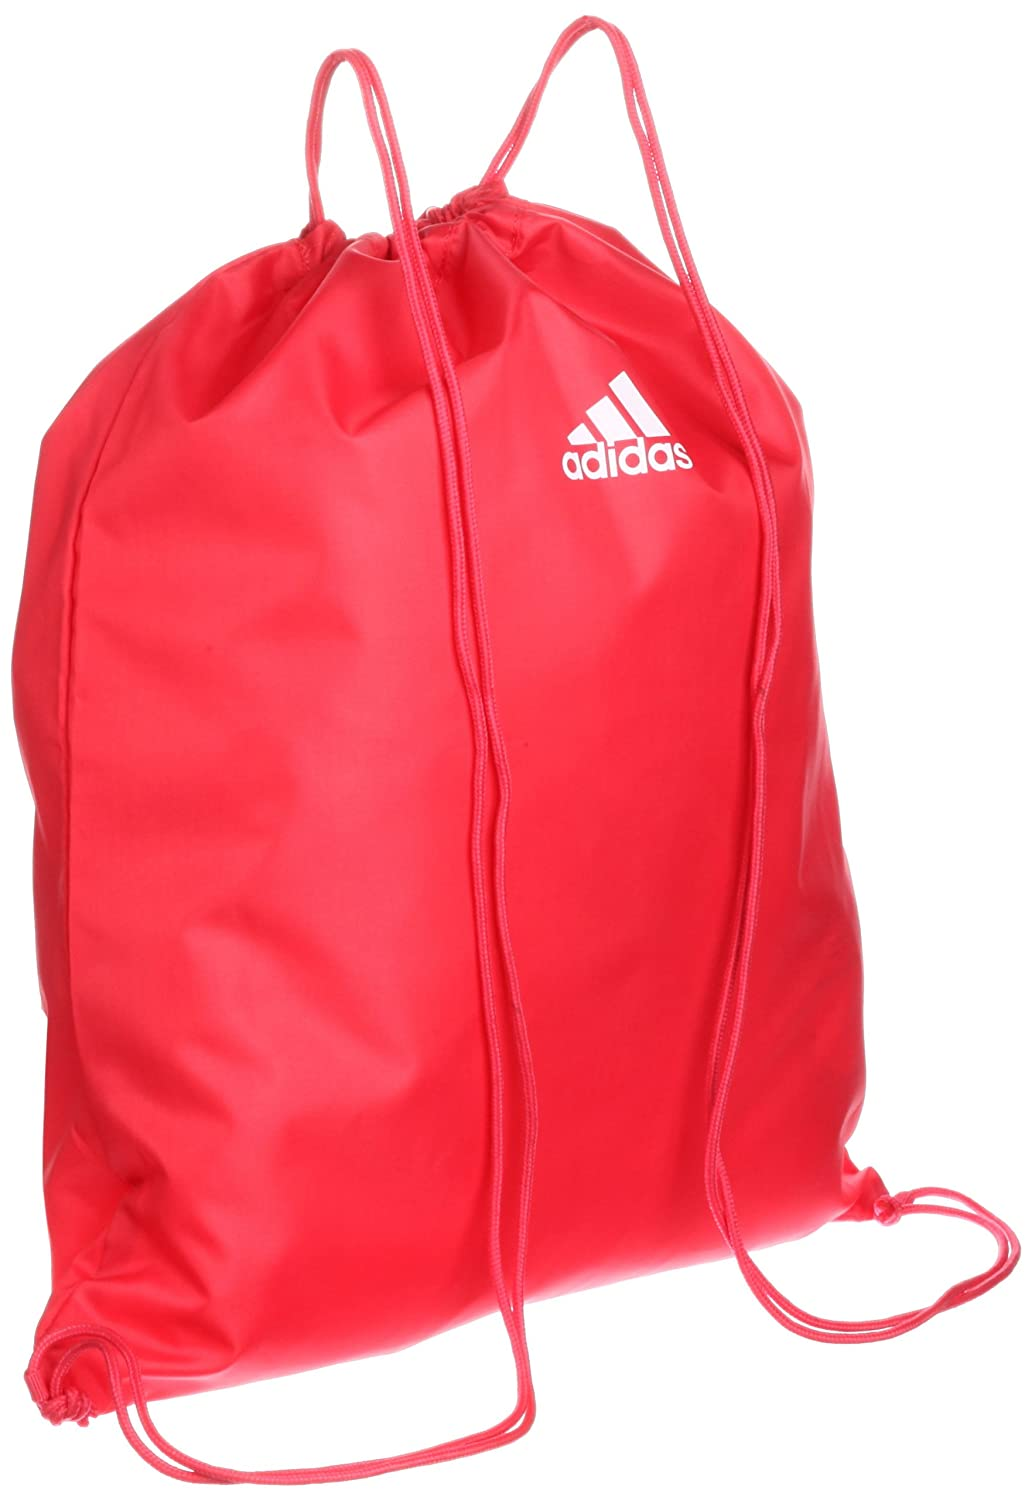 2c753f871b Adidas Gym Bag Linear Essential School Bag Sports Bag Shoe Bag Drawstring  Bag Red White Z26361 New  Amazon.co.uk  Sports   Outdoors